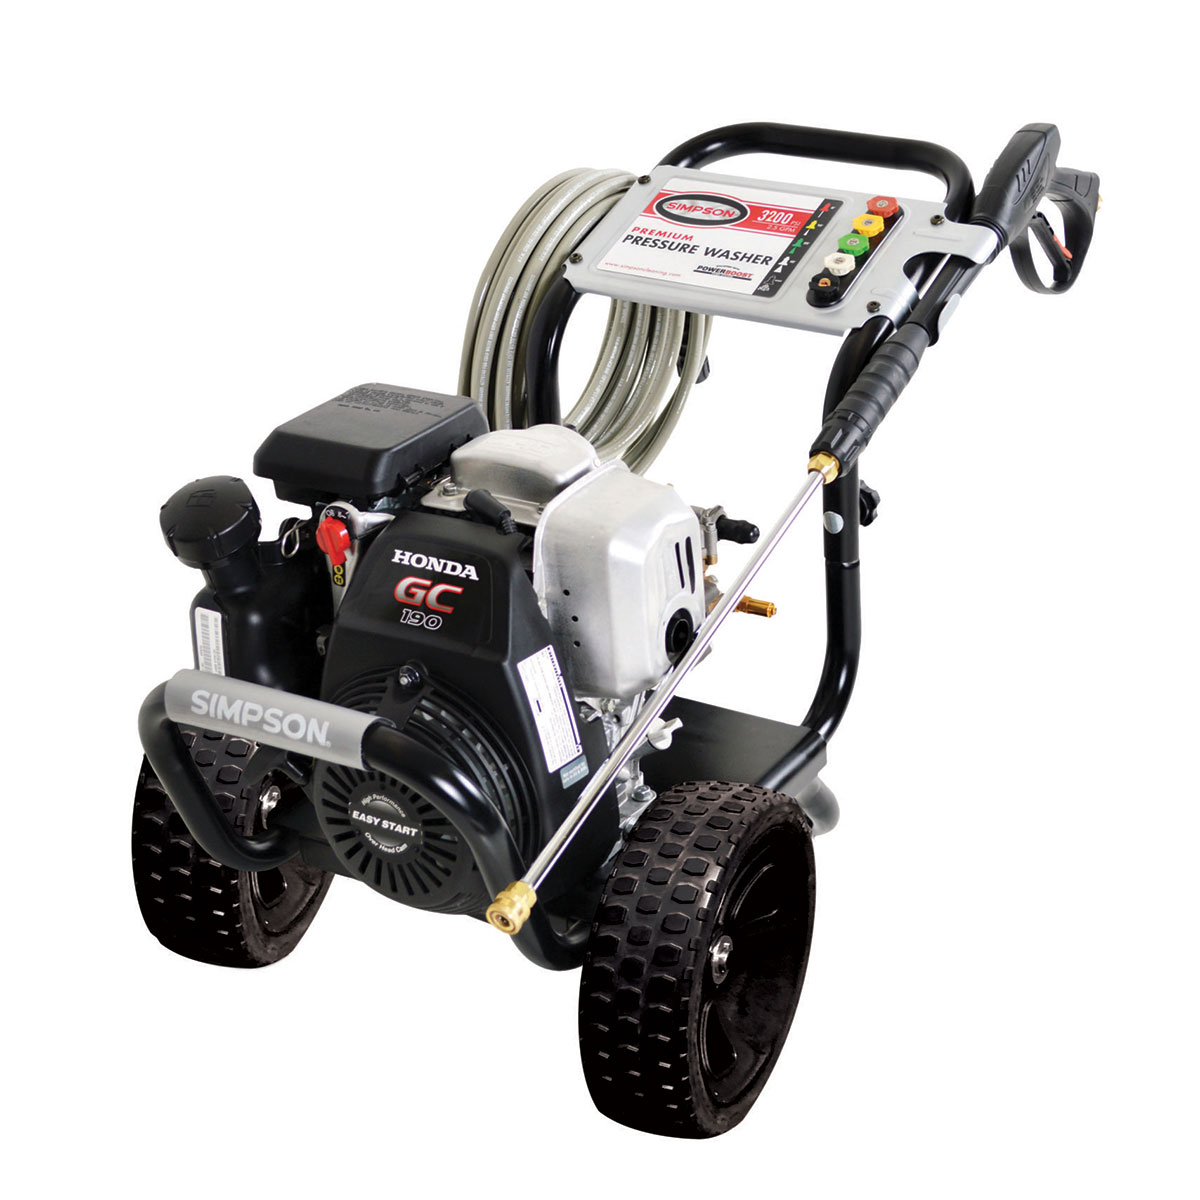 3100 PSI Megashot Premium Residential Series Pressure Washer with a Honda GC 190 engine and a 25' hose - MSH3125-S